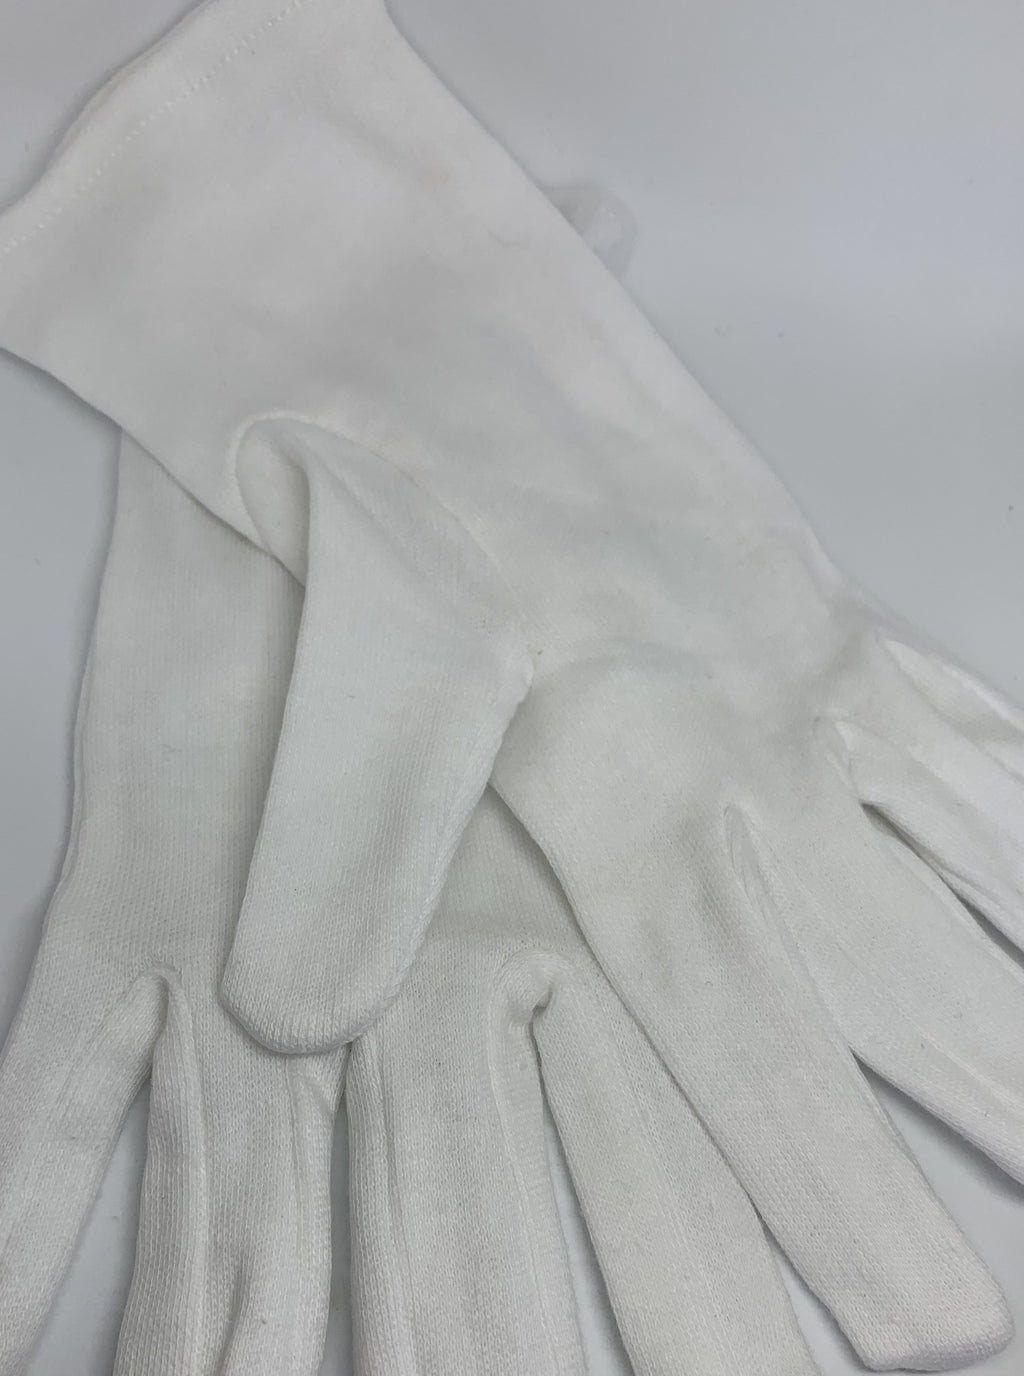 100% Organic Cotton Gloves for intensive skin treatment + protection